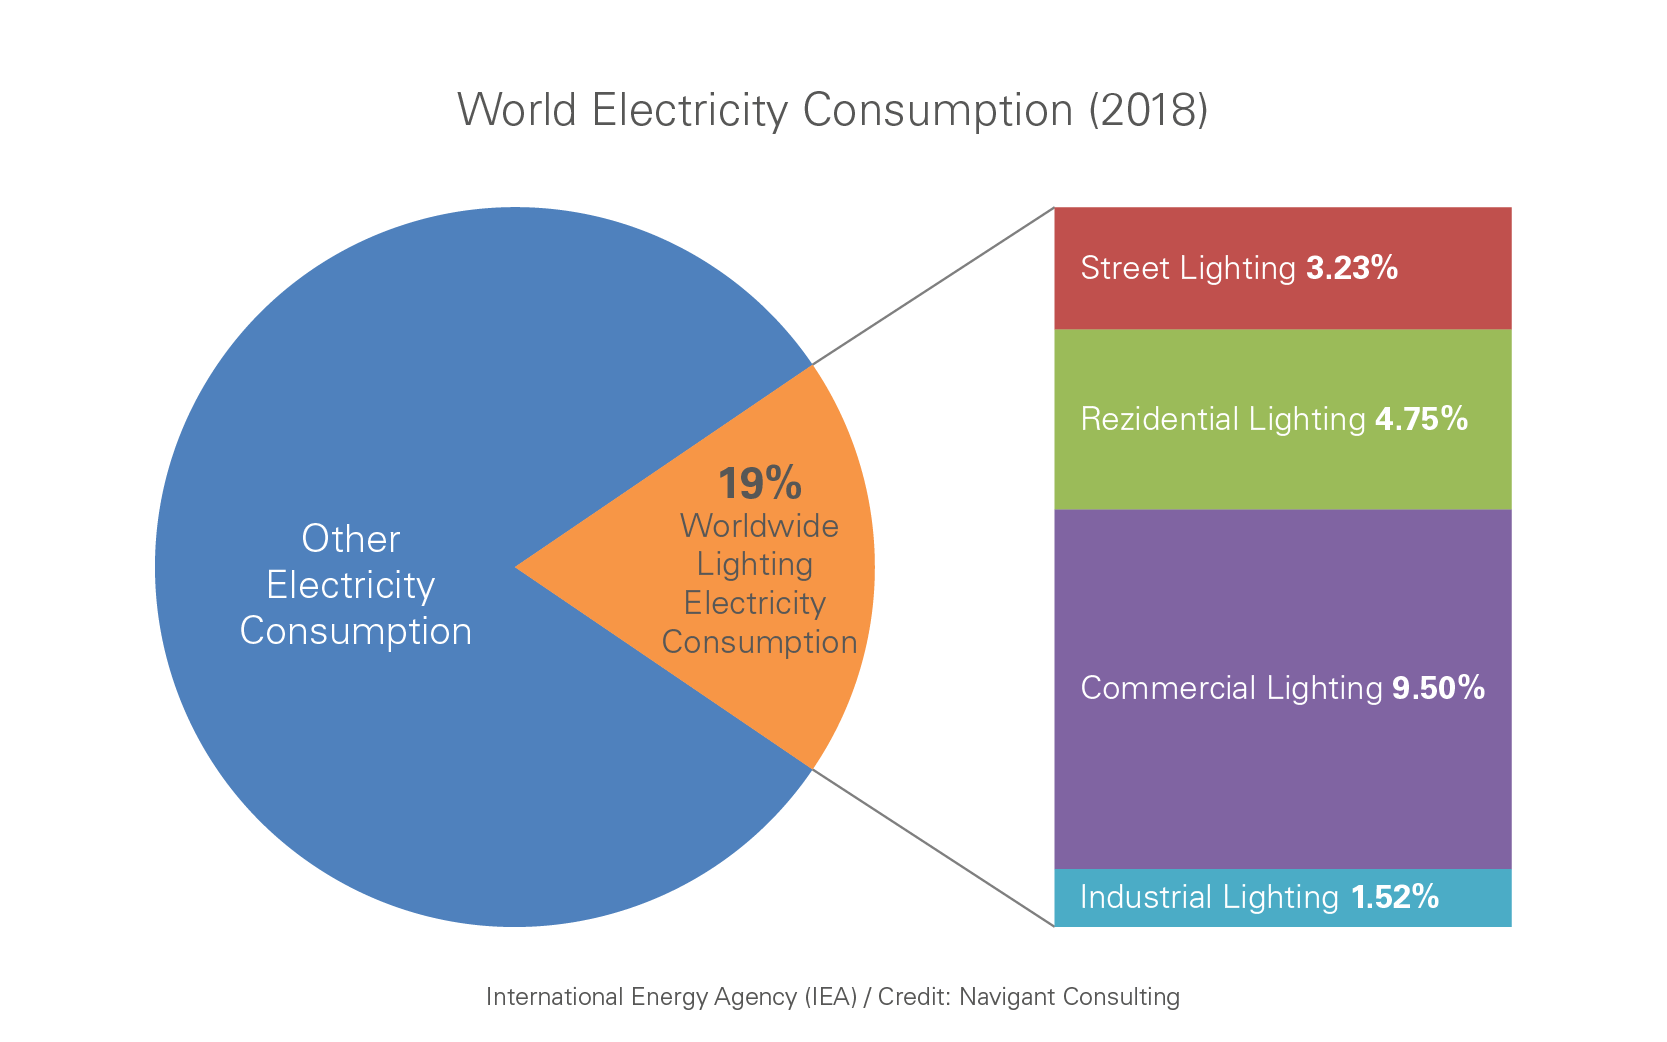 World electricity consumption including street lighting